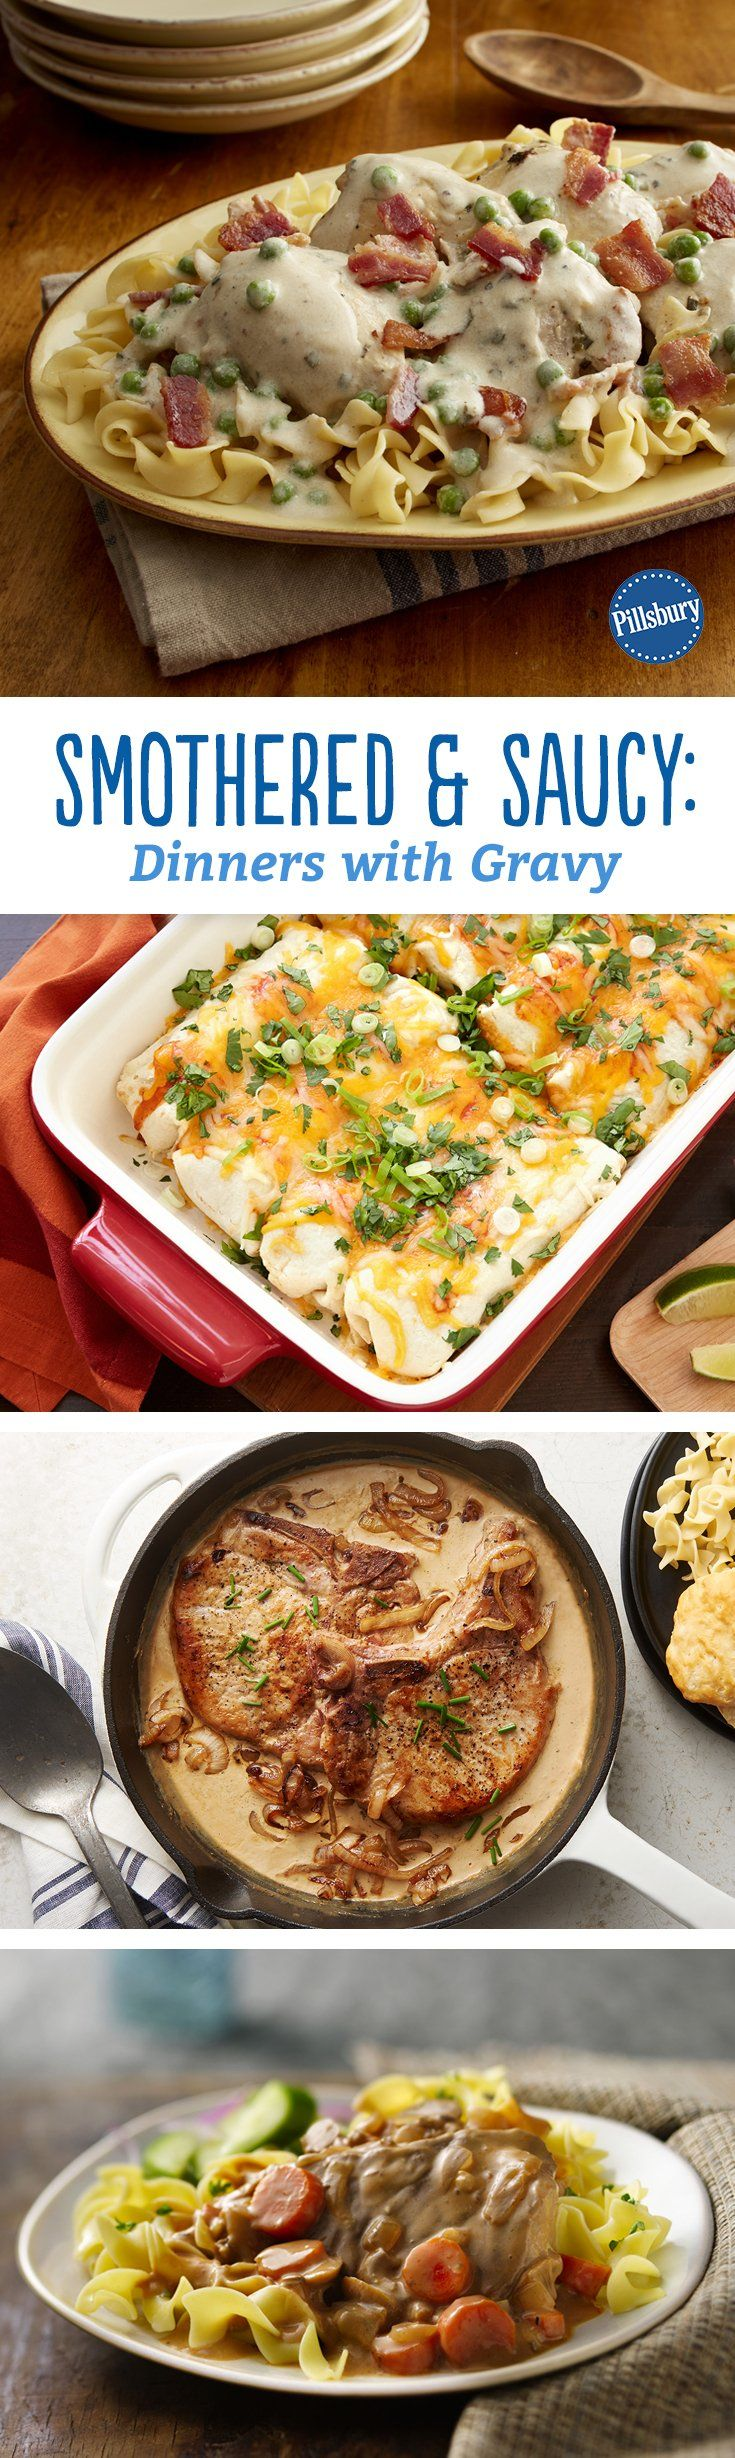 These dinners, smothered in sauce or gravy, are the very definition of cozy comfort food. From pork chops to smothered burritos, and everything in-between, we can't get enough of these favorites!